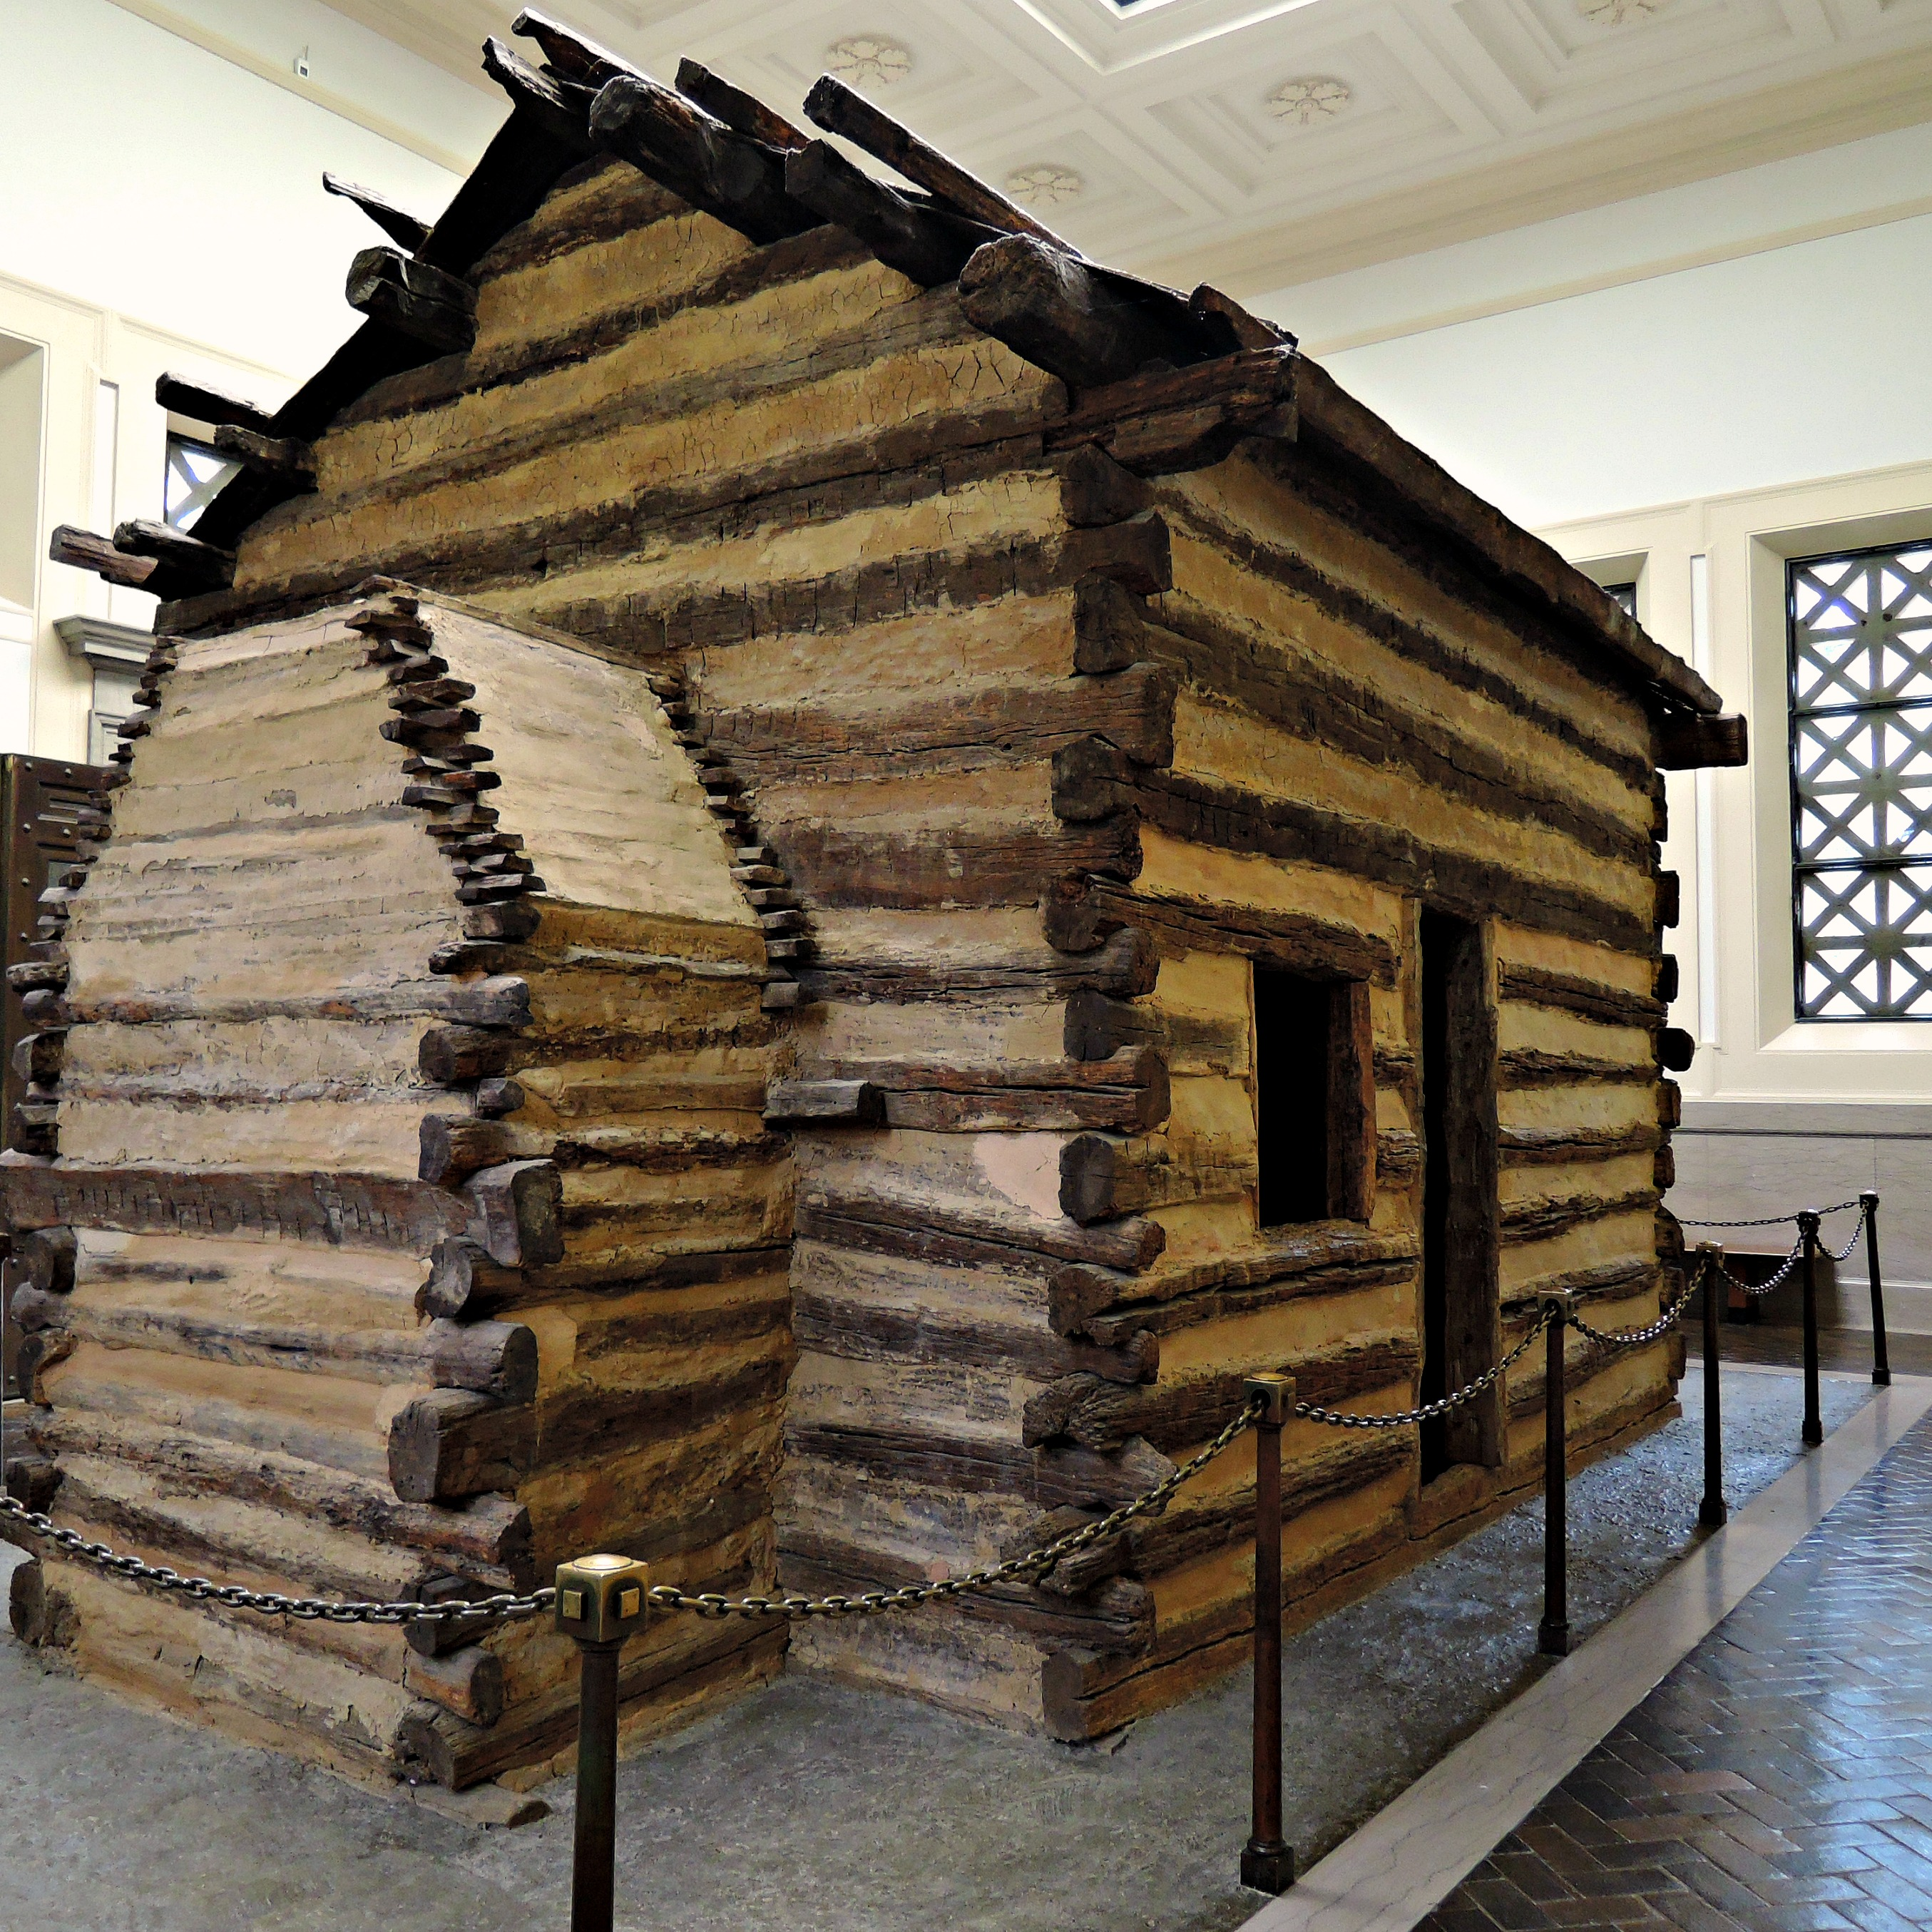 Very Impressive portraiture of log cabin with #386693 color and 2709x2709 pixels